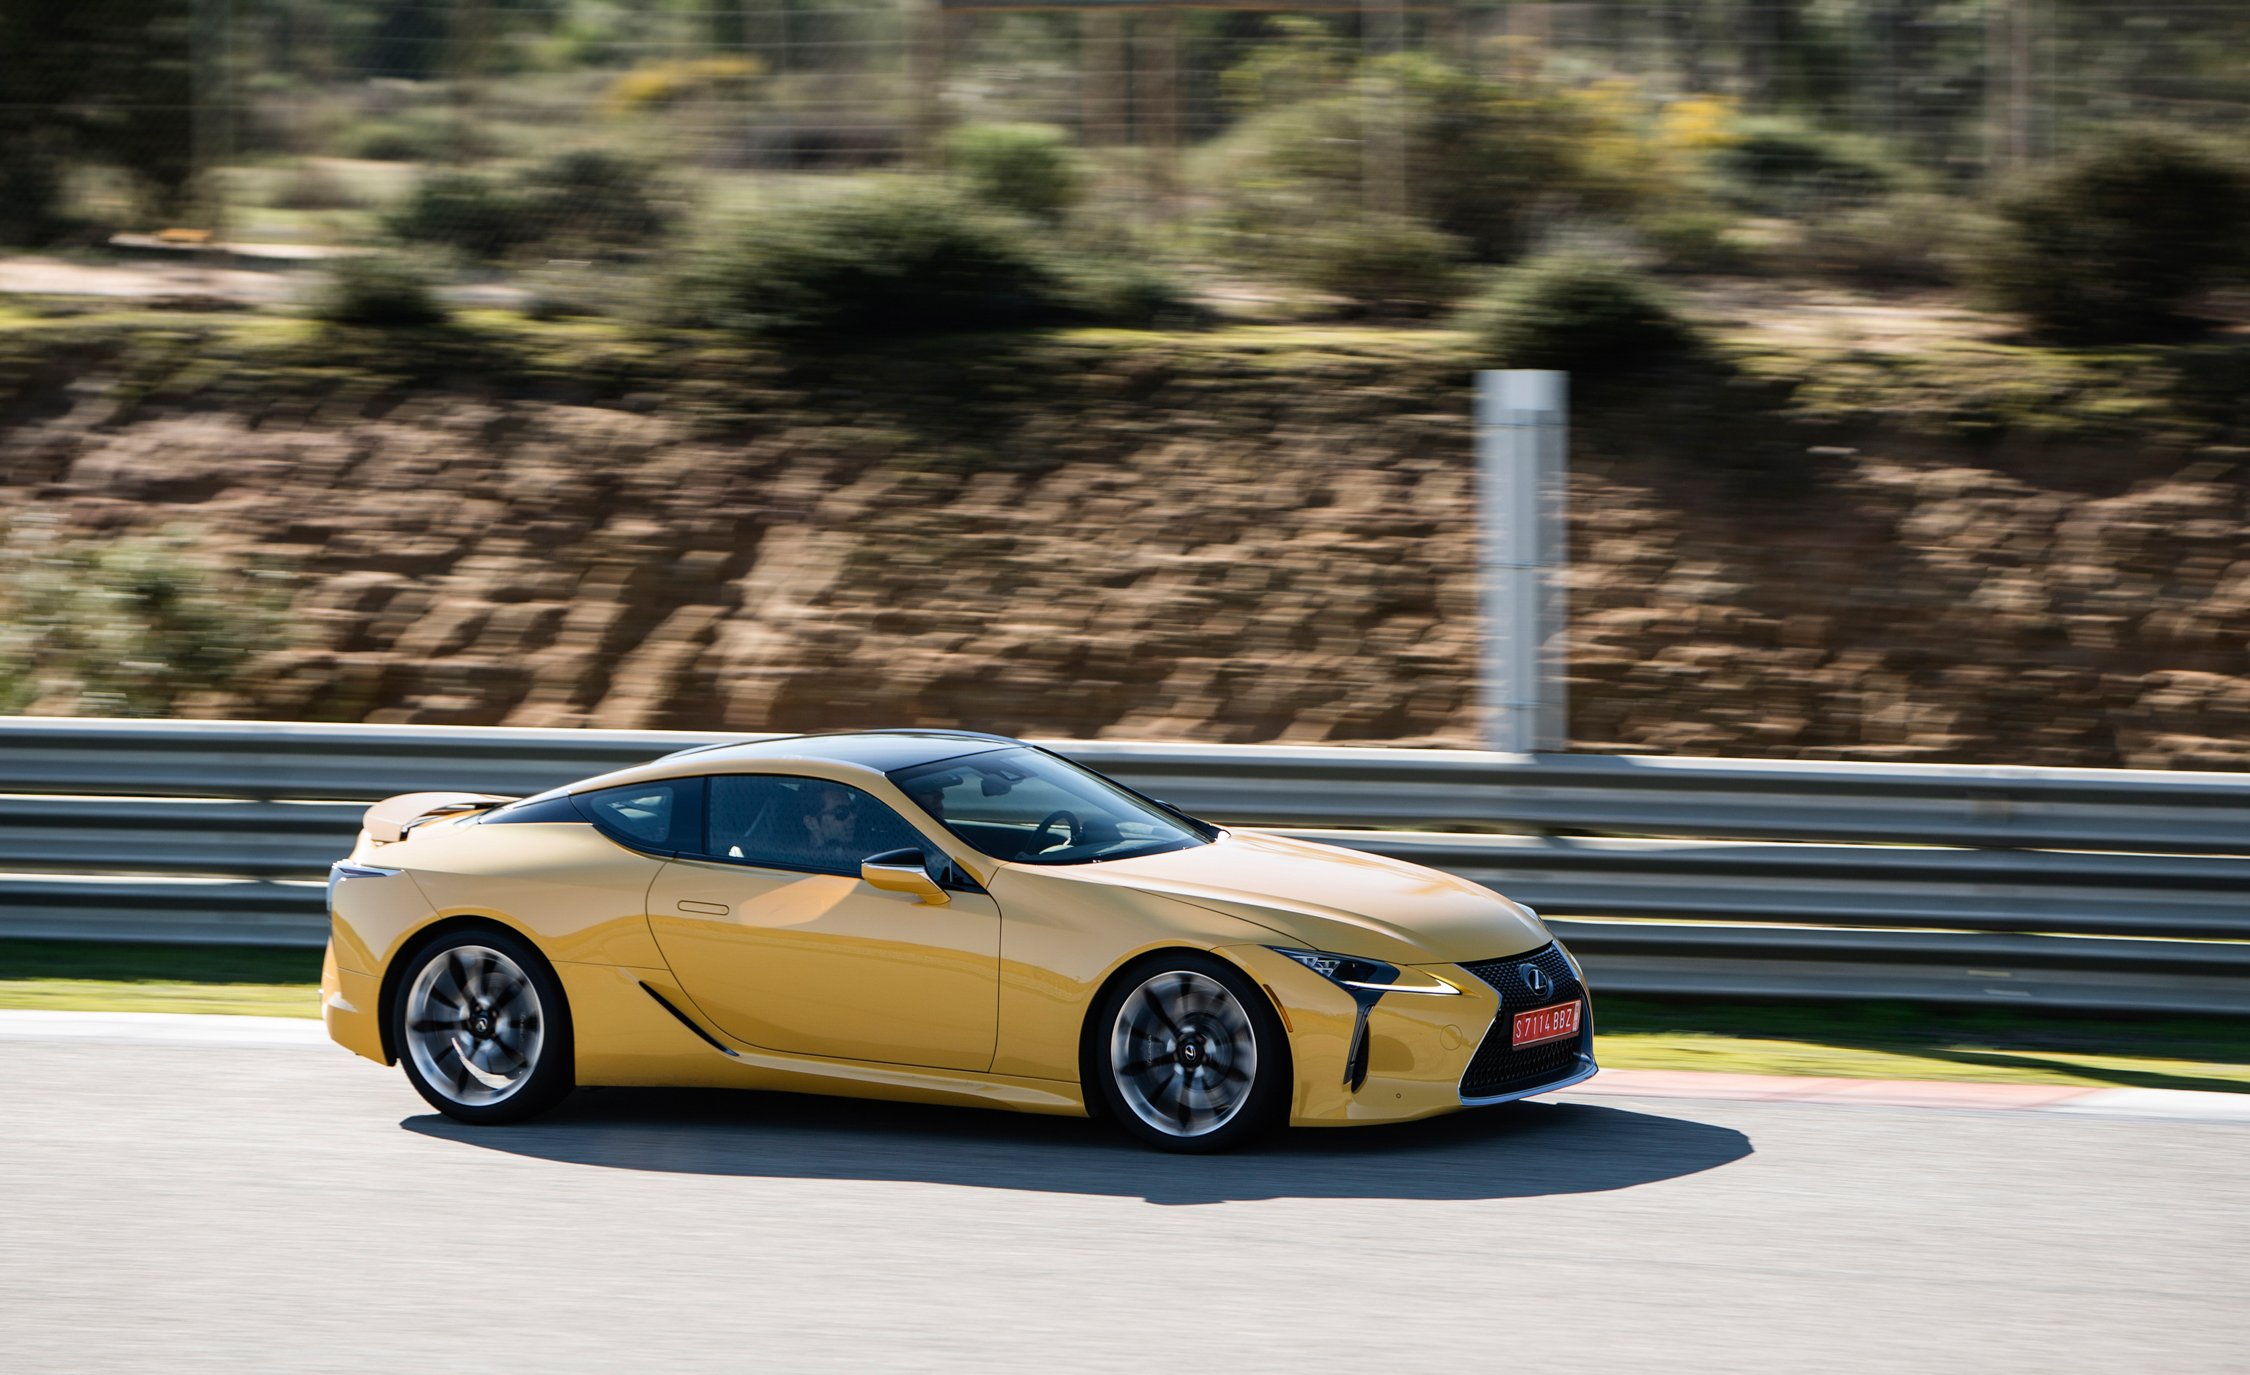 2018 Lexus Lc 500 Yellow Test Drive Front And Side View (Photo 30 of 84)